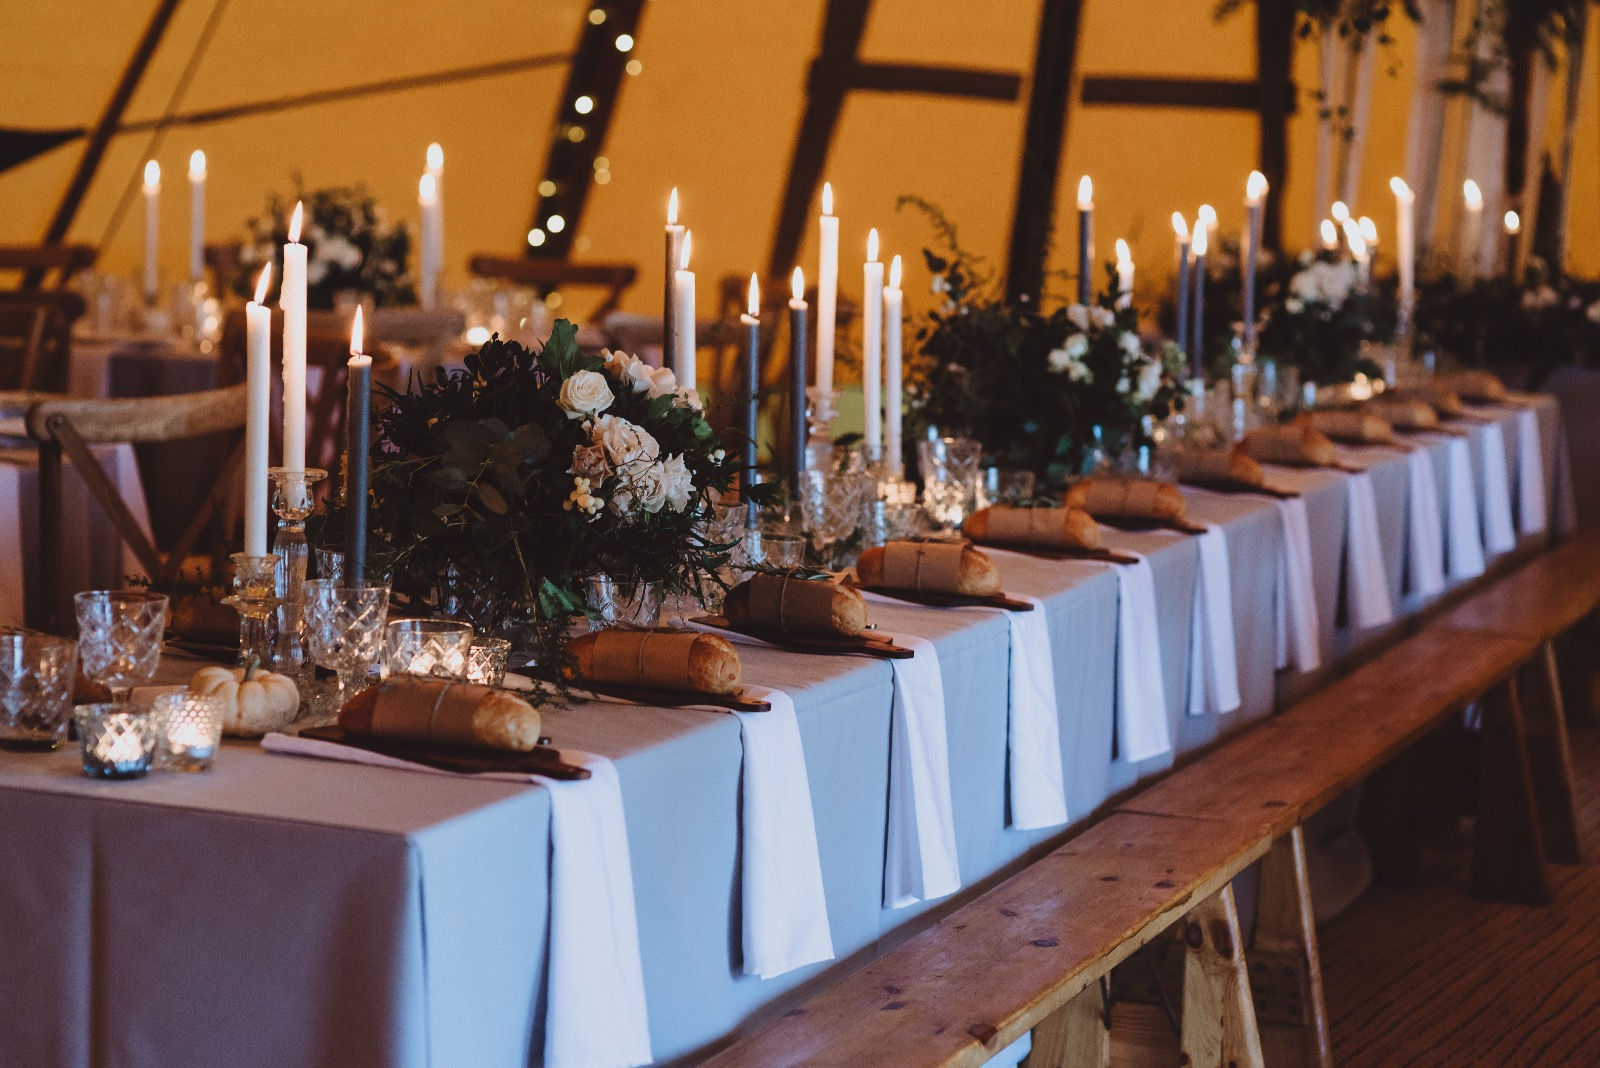 How To Style Your Tipi Wedding Explained by Lesley of The Rustic Wedding Company. Simple blue cloths, draped napkins and french bread was the baseline for this look.